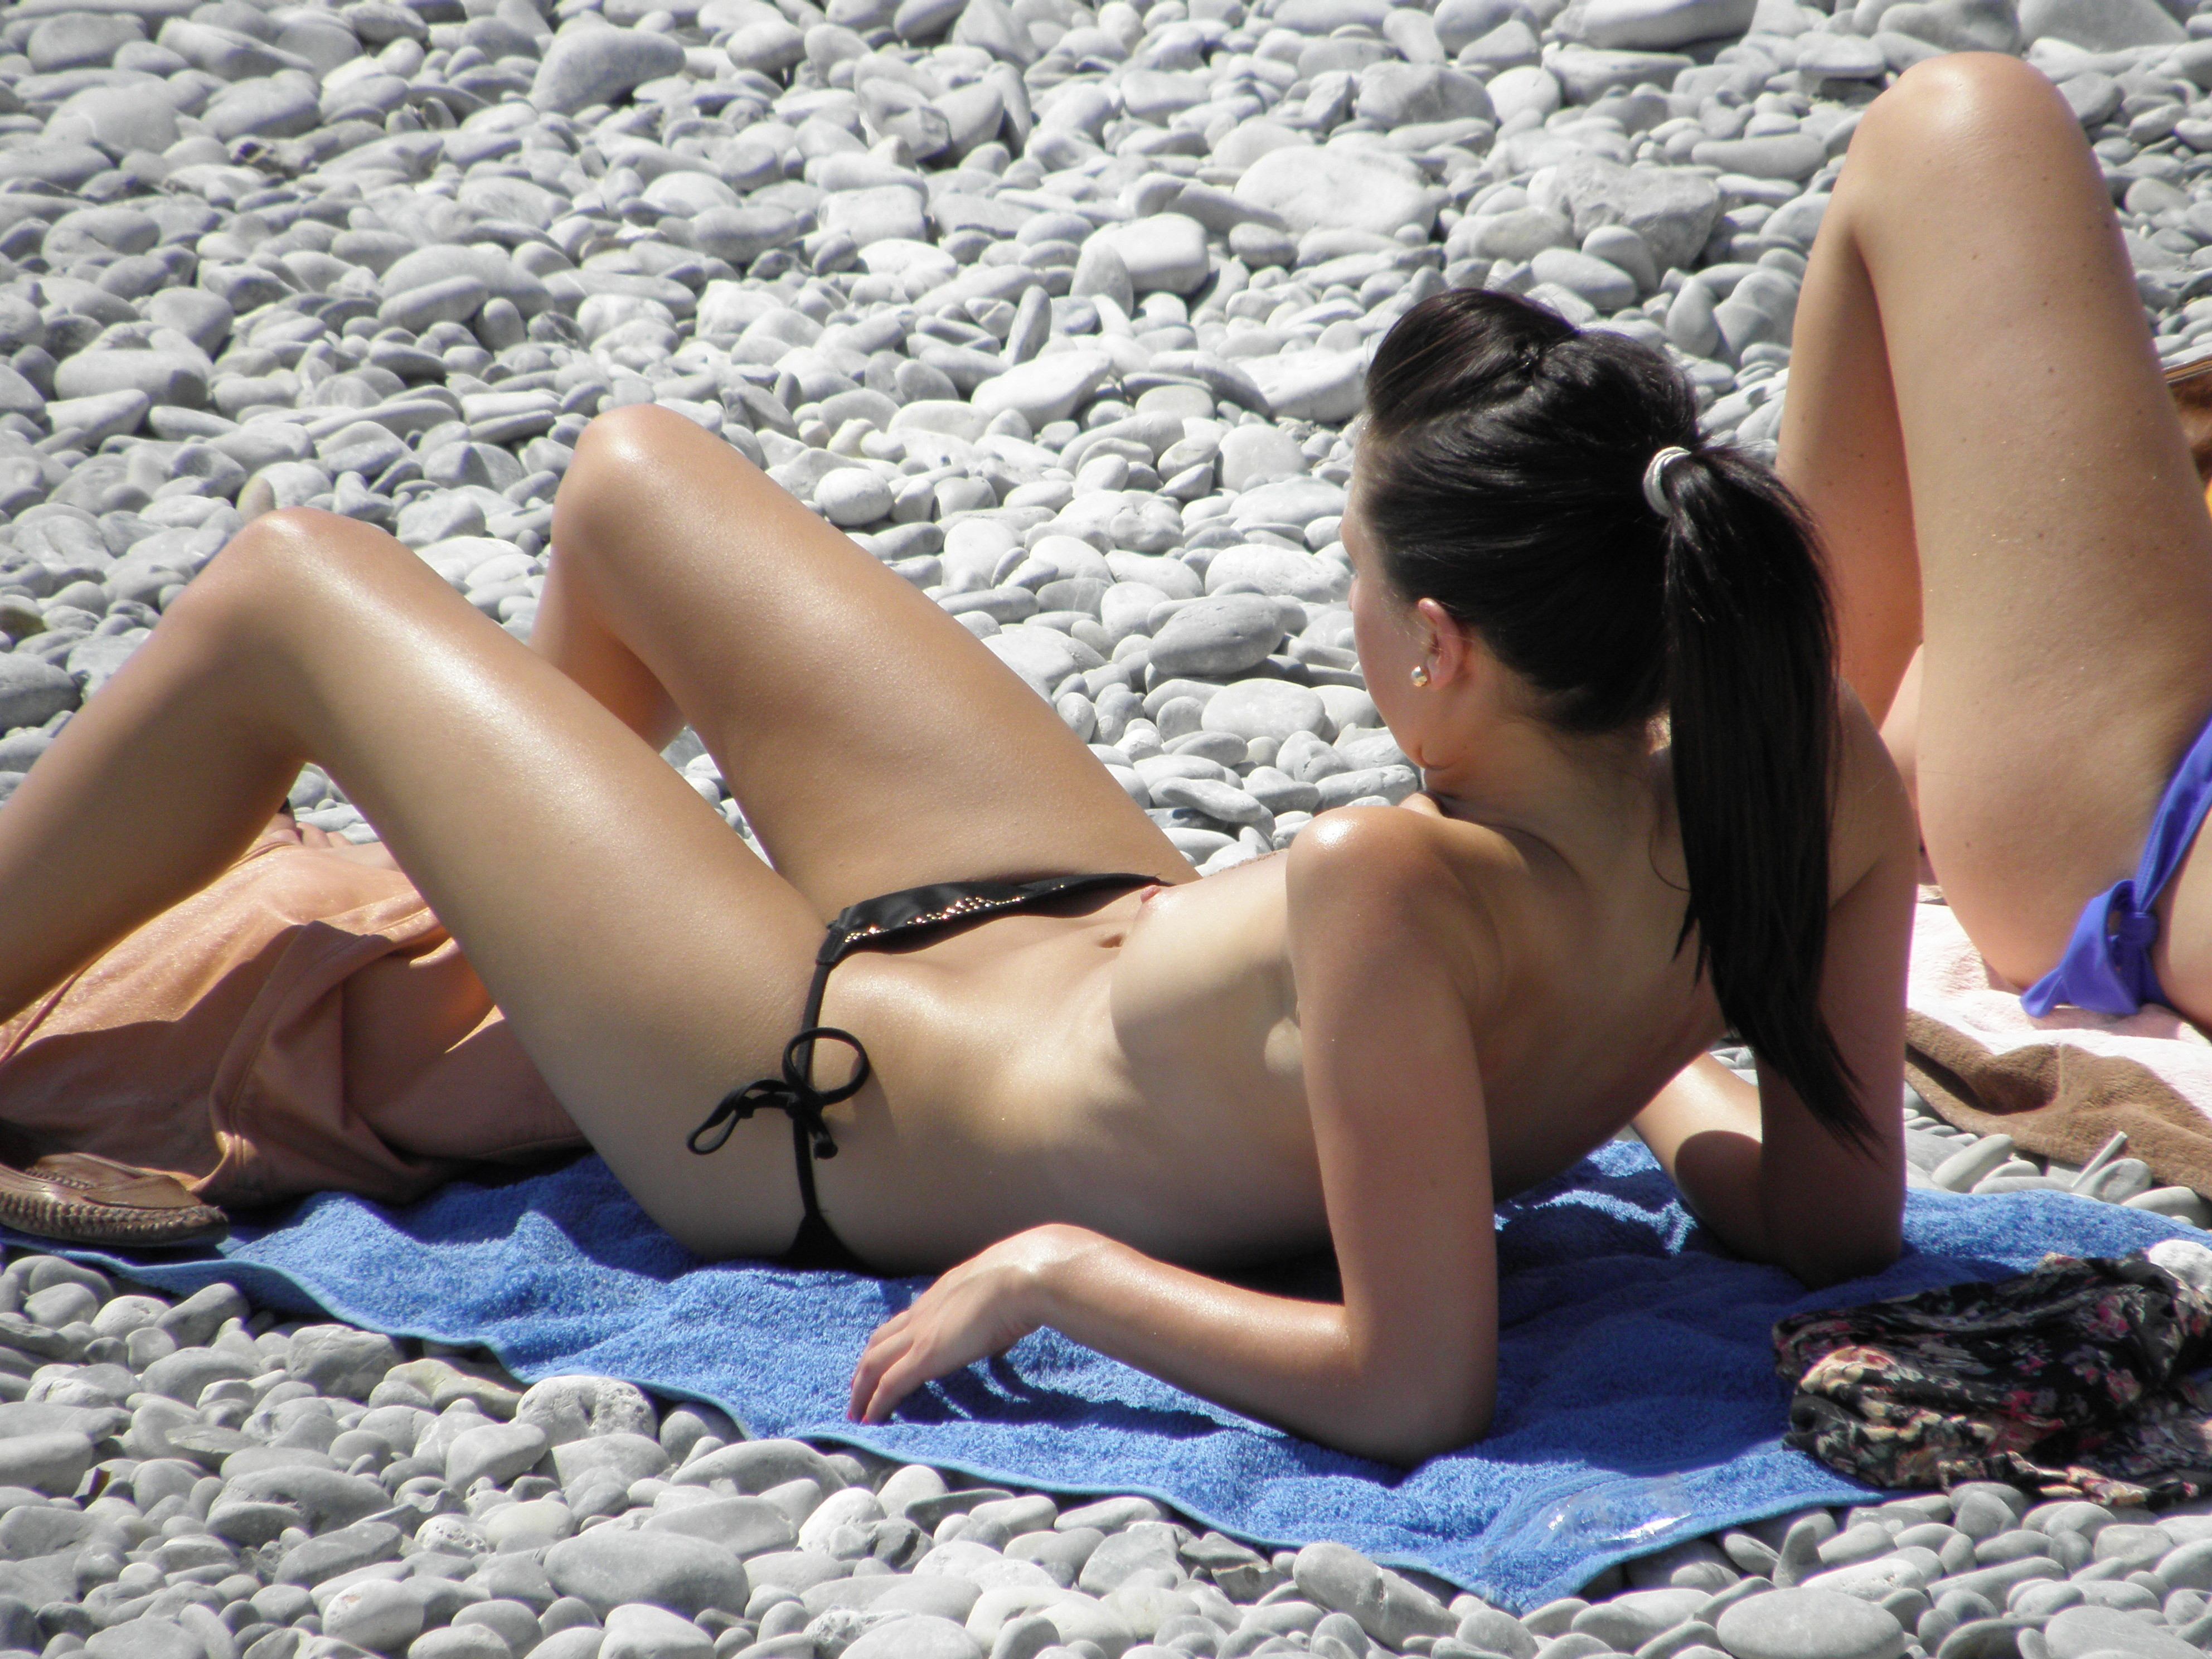 nudists-girls-boobs-beach-topless-mix-vol7-79